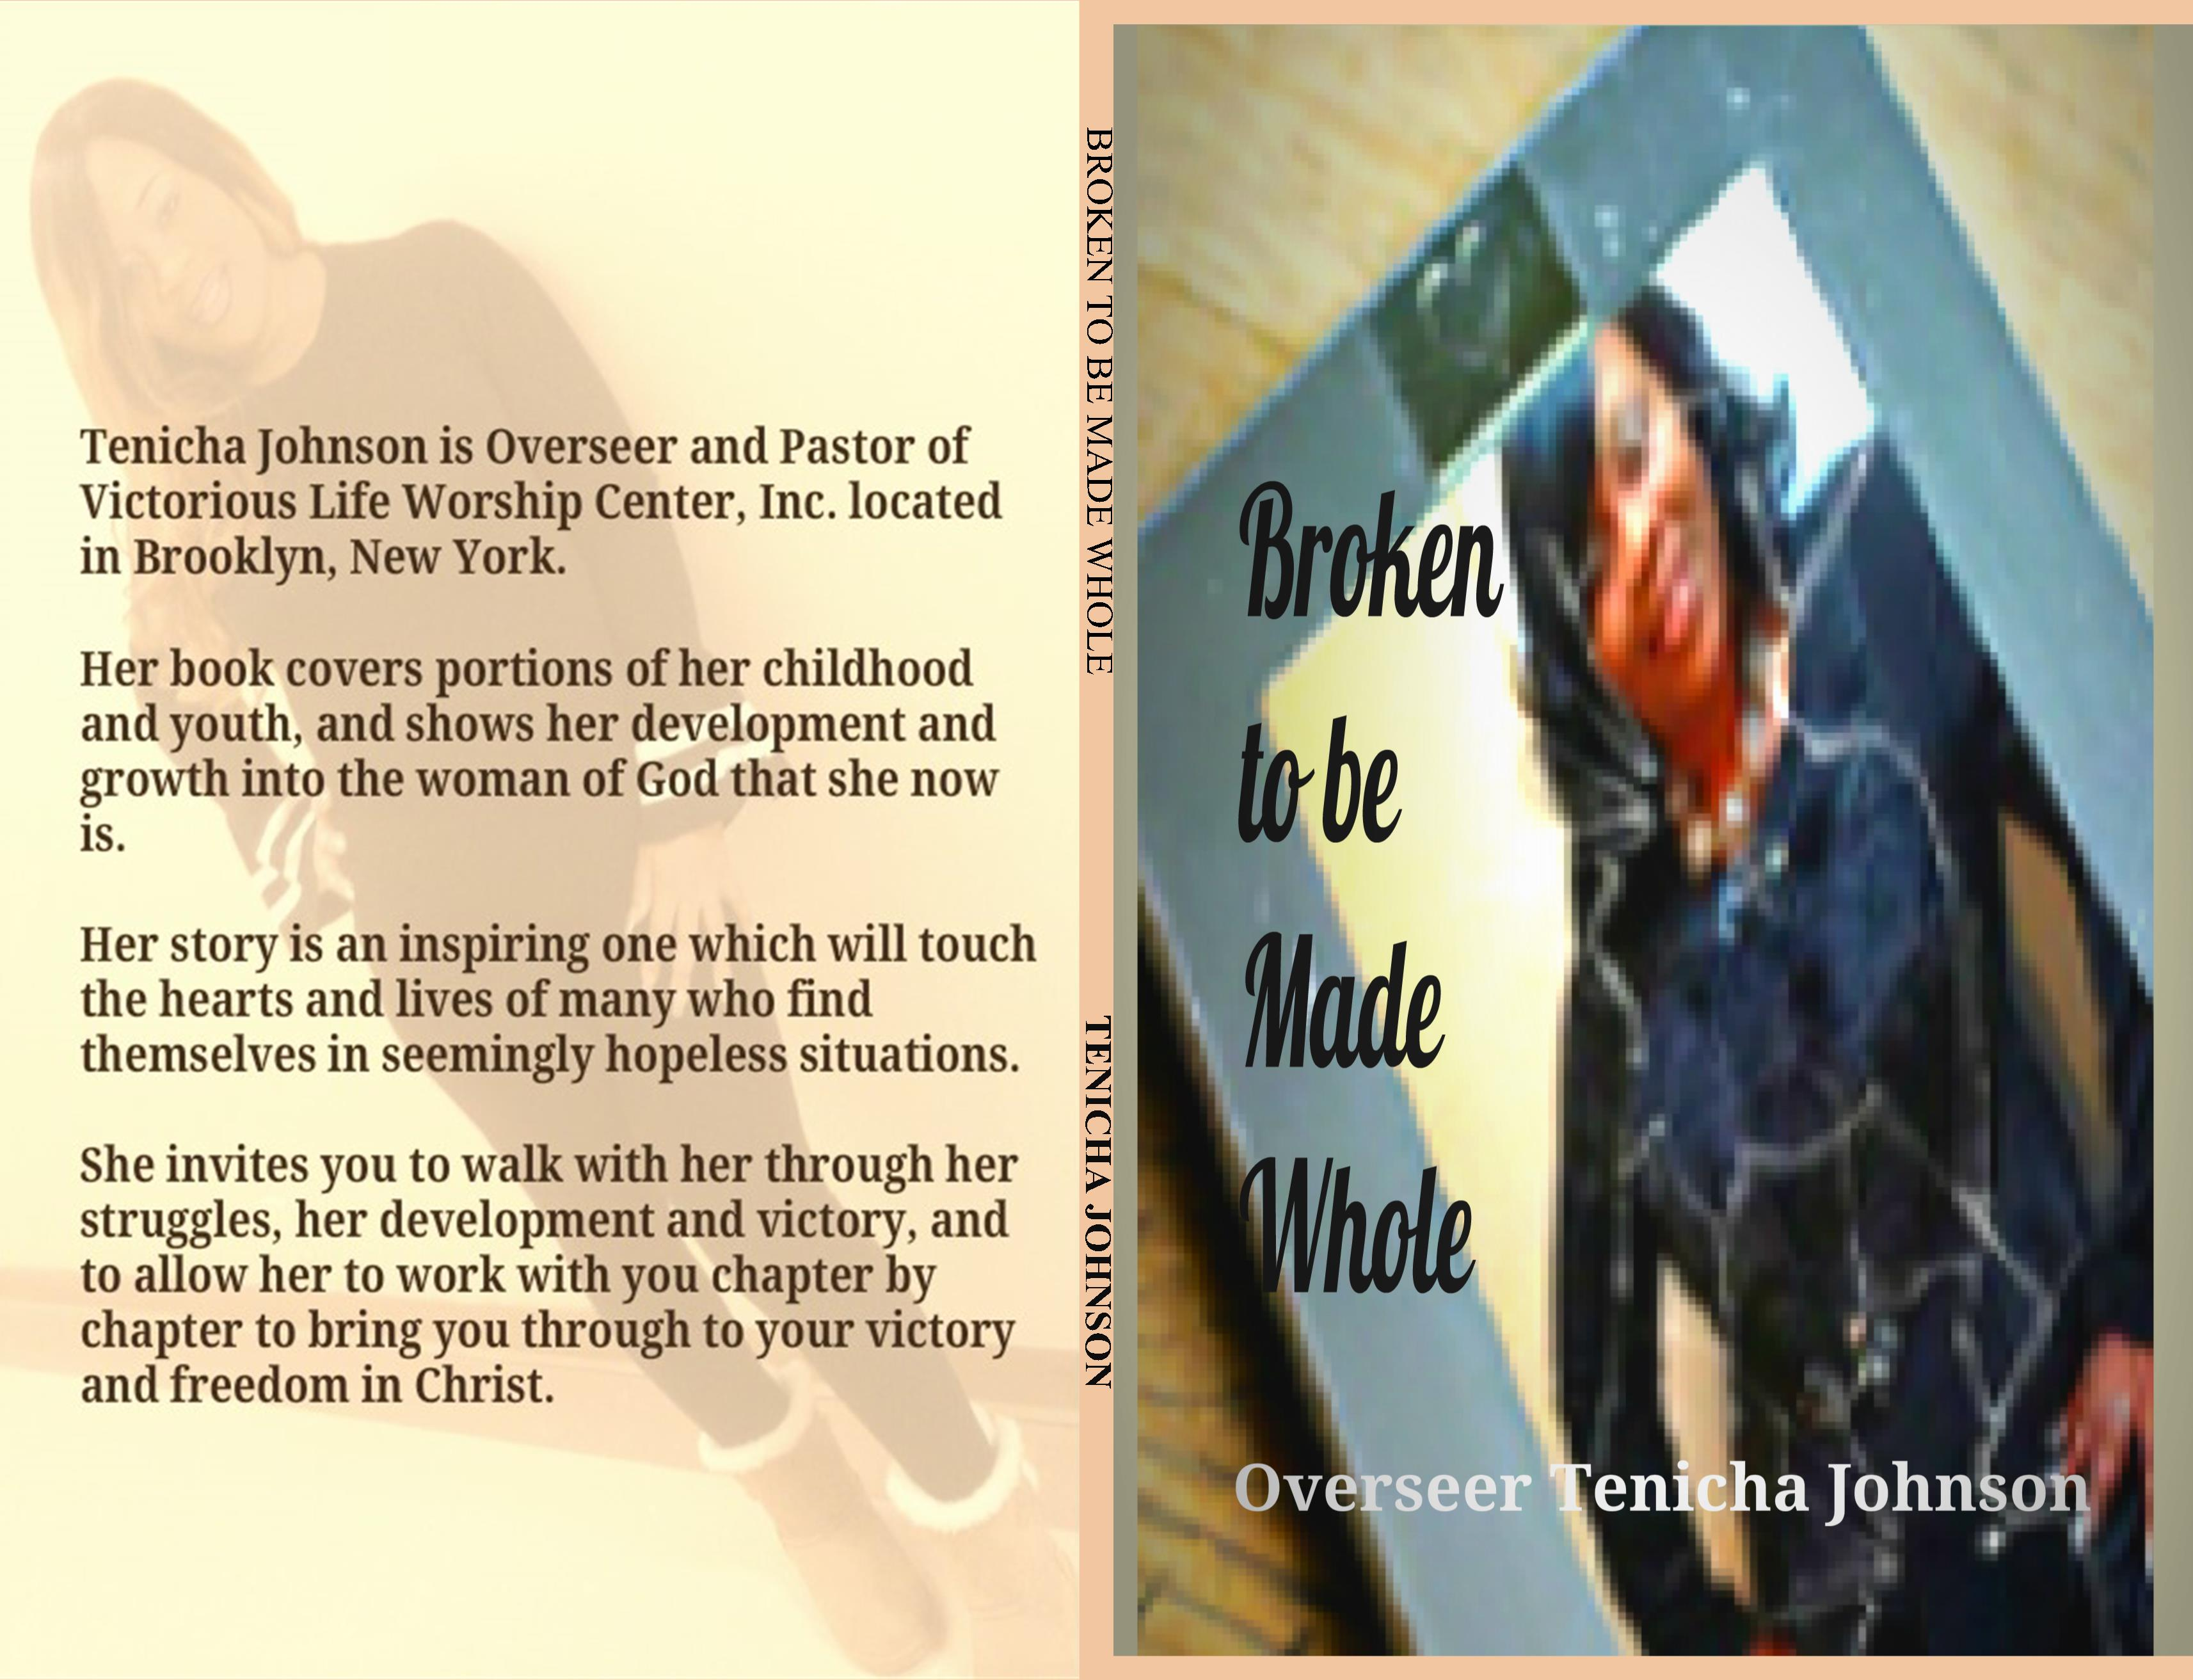 Broken to Be Made Whole cover image